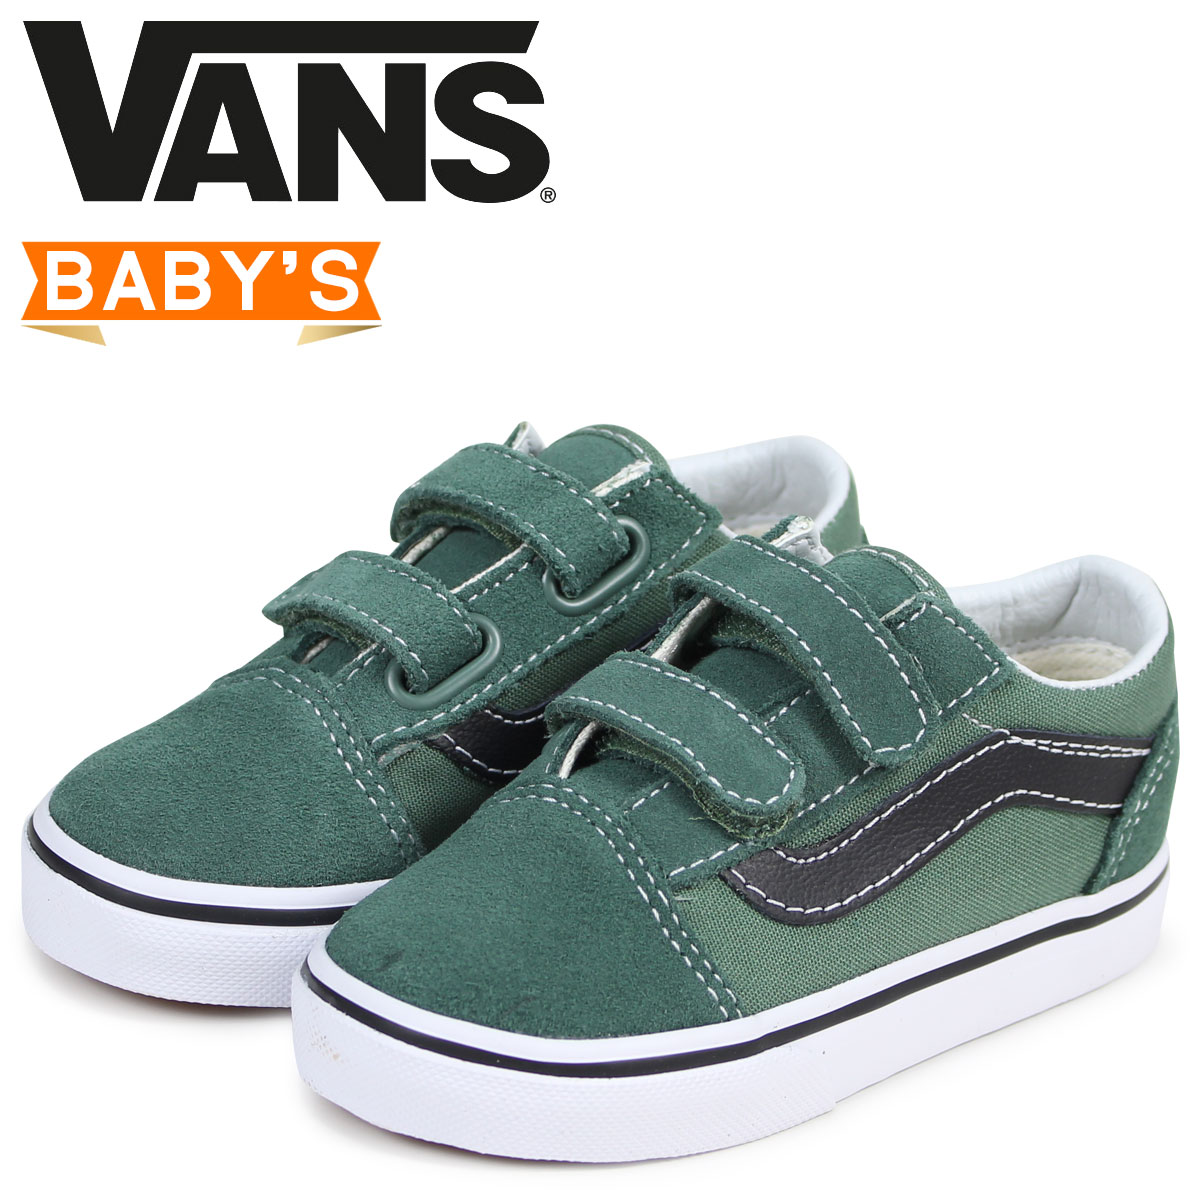 vans old skool baby